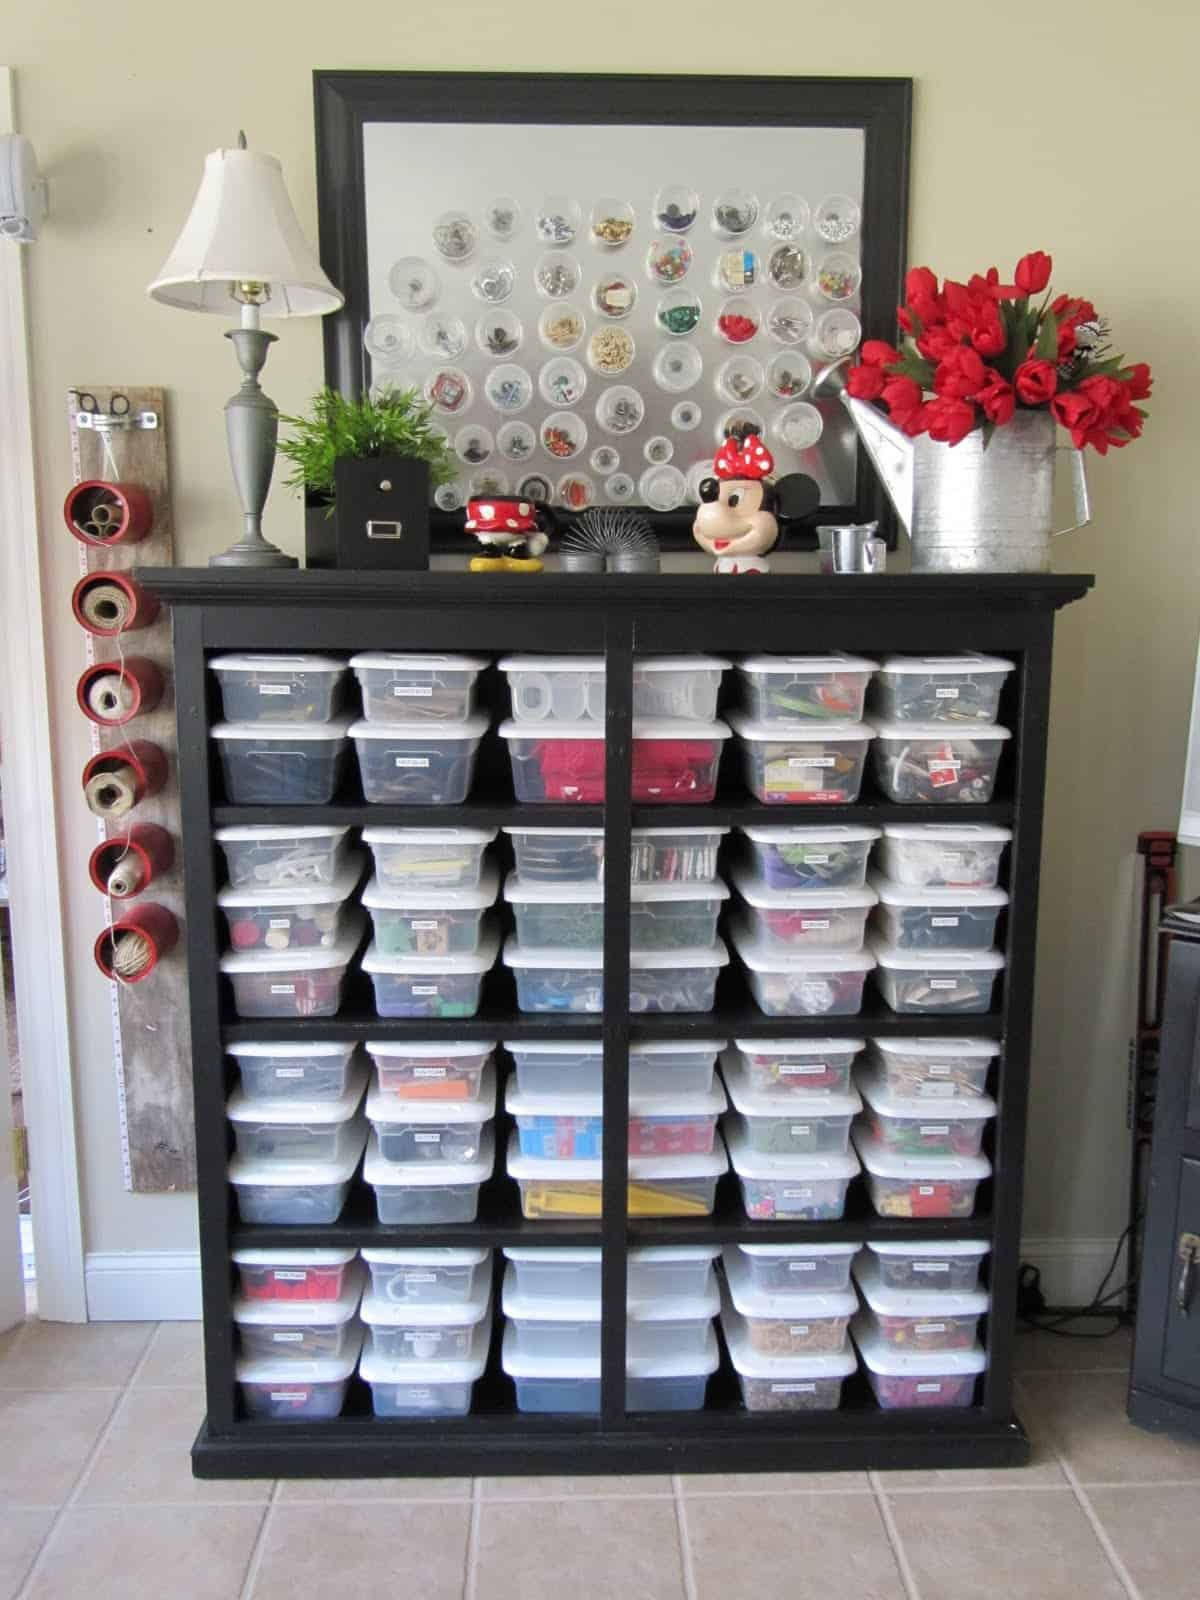 Organized, labelled tubs on shelves